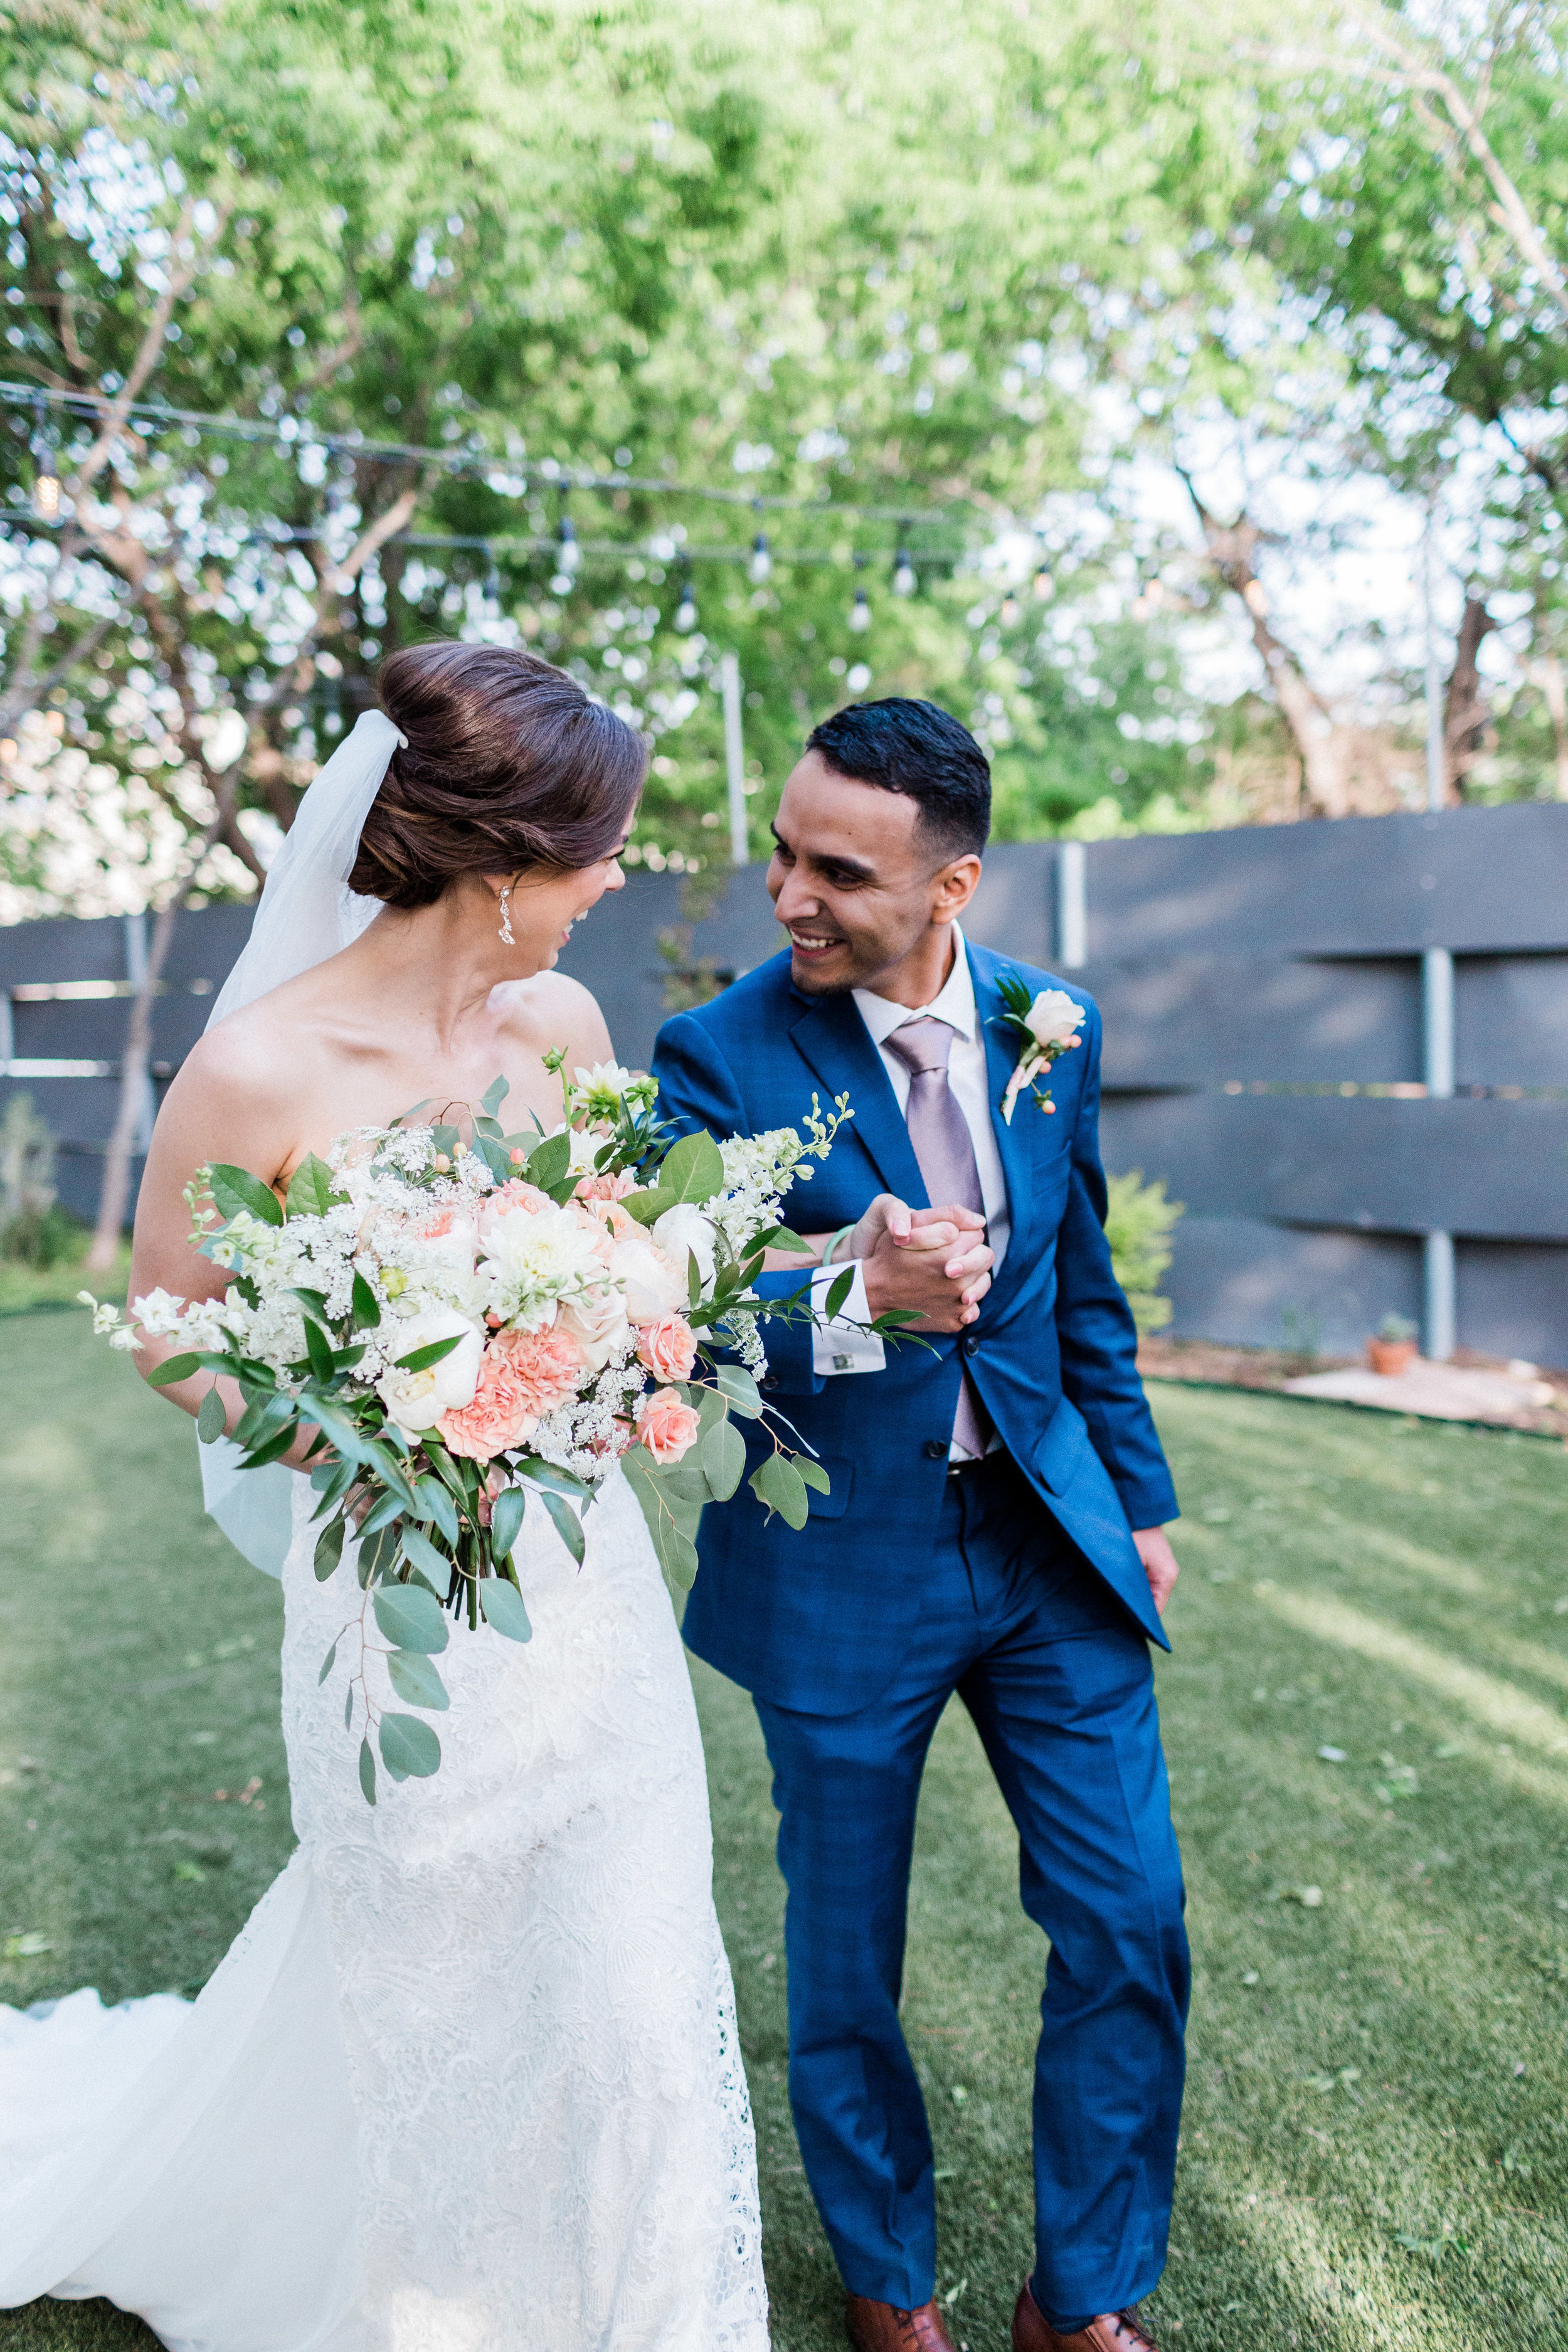 Outdoor Wedding in Fort Worth Texas at Artspace 111